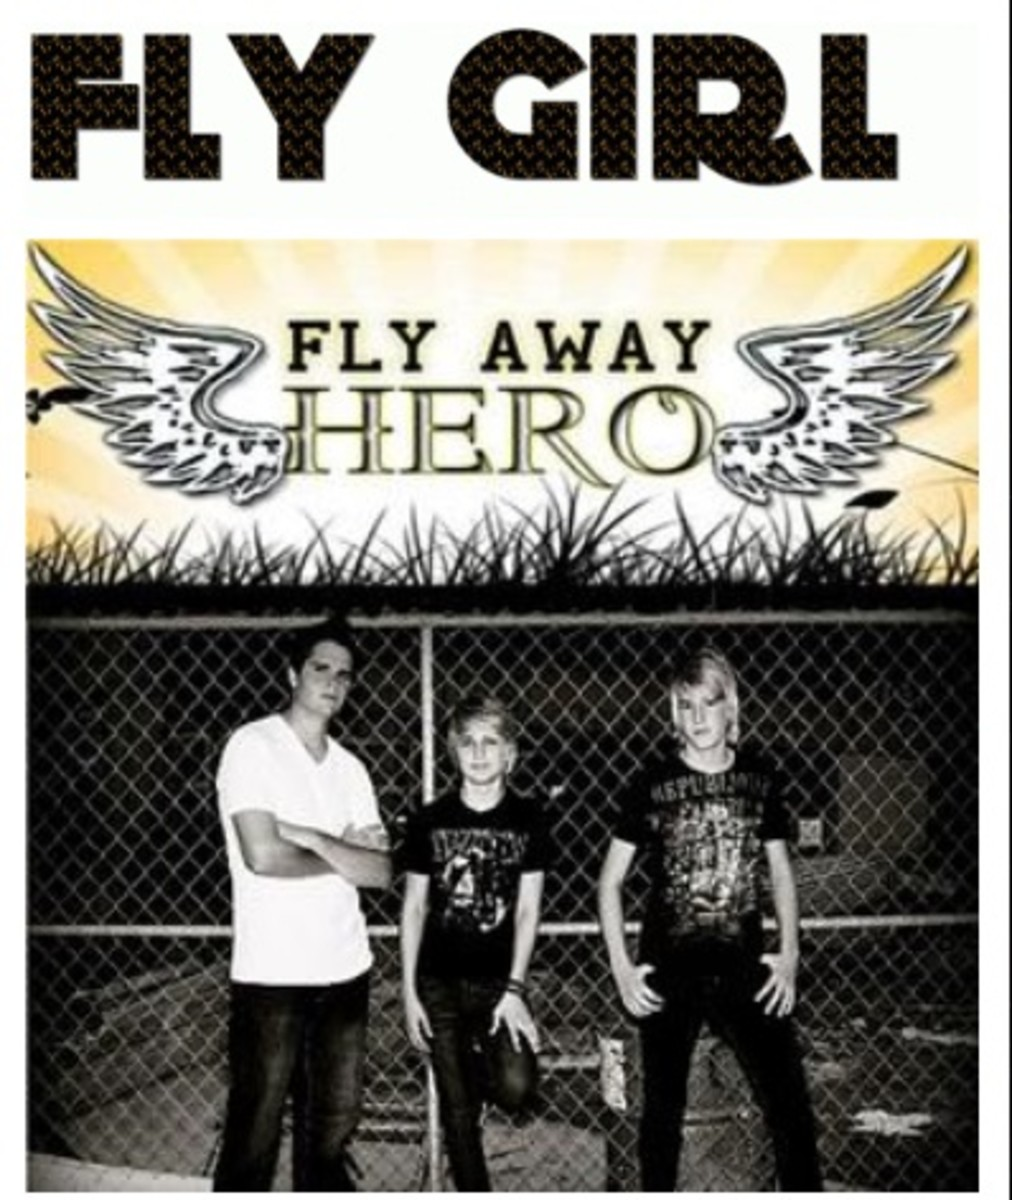 Dalton reassemblies old band Fly Away Hero